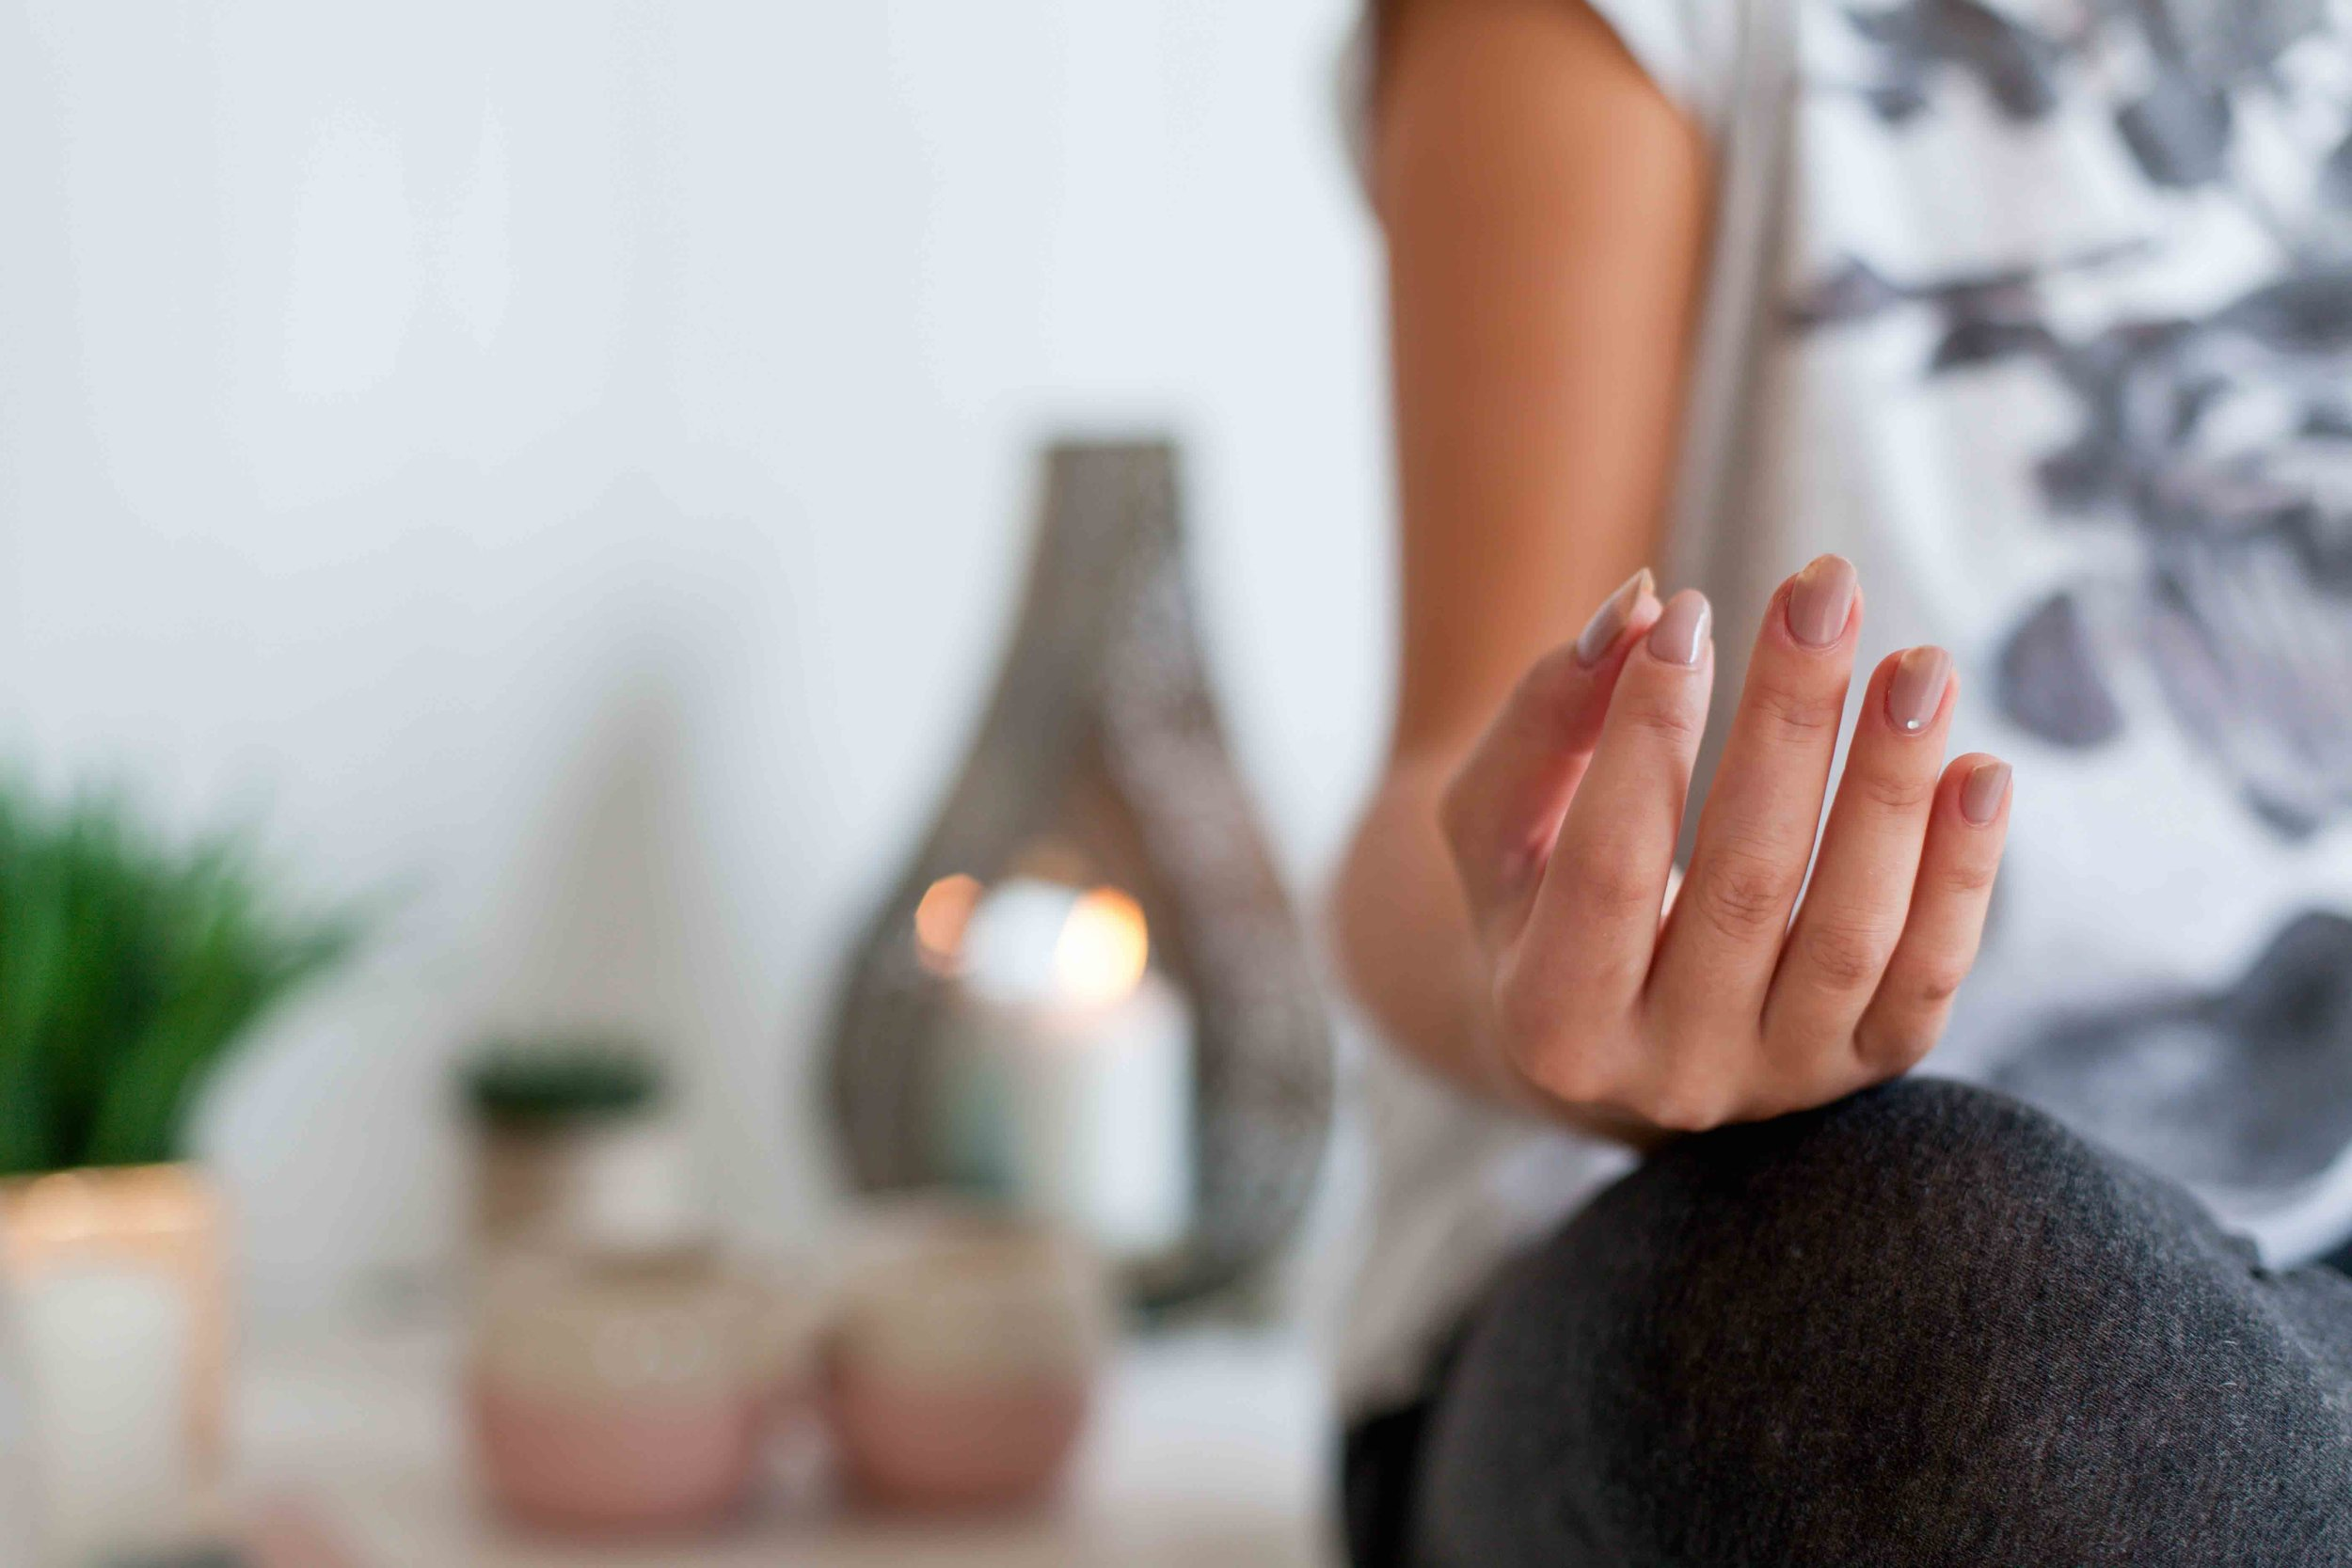 Time for you - A luxurious 2.5 hour relaxation session where you will learn meditation techniques, breathing exercises and gentle movements to help you create your own personalised practice to use at home.During this session will be talk about your routines, current stressors and how you can bring more calm and peace into your life.£150